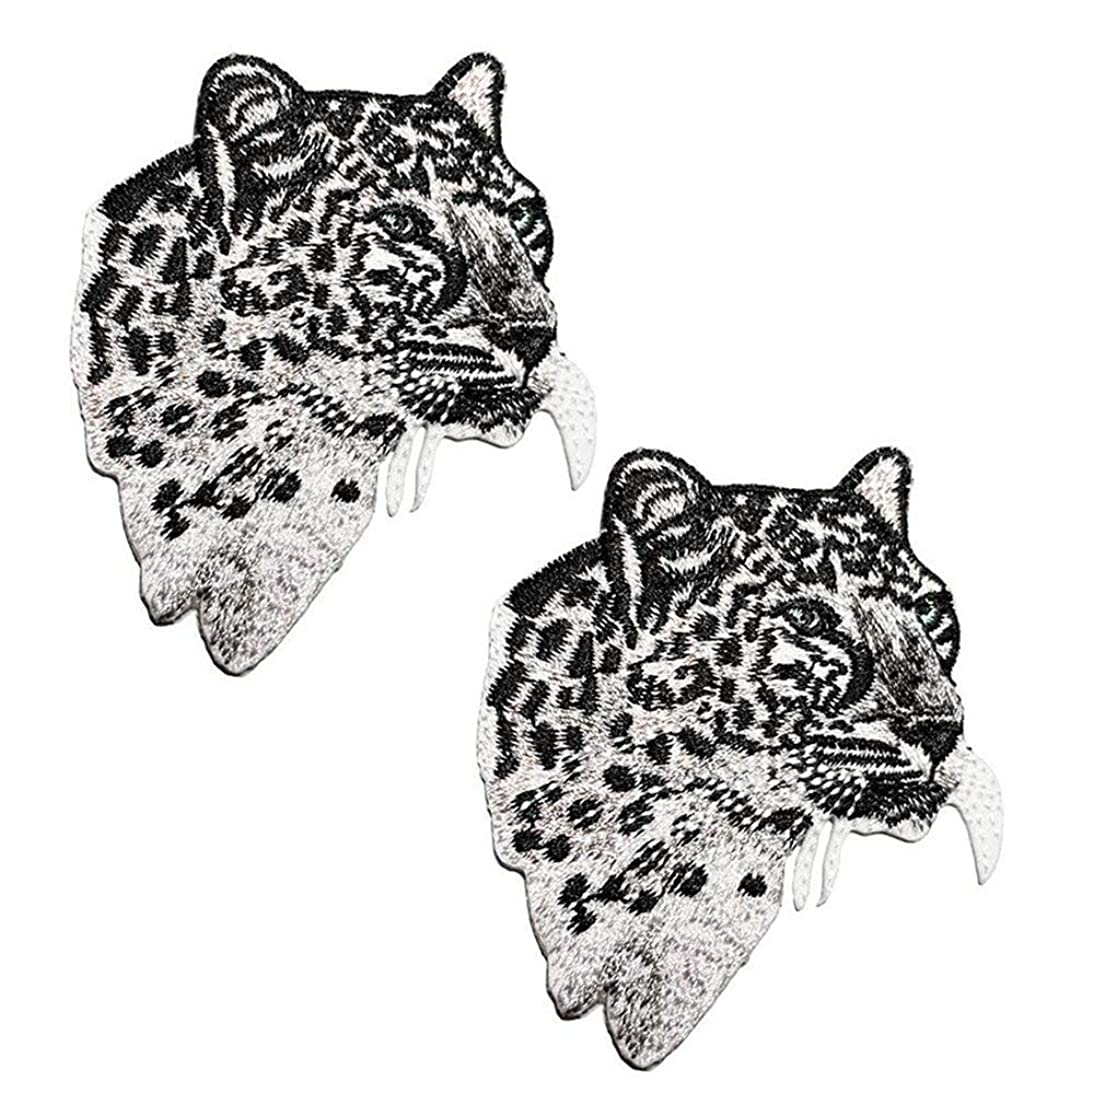 2 Pack Delicate Embroidered Patches, Iron On Patches, Cool Embroidery Patches, Sew On Applique Tiger Patch, Custom Backpack Patches for Men, Boys, Kids, Super Cool! (#1 Leopard (2 Pack))